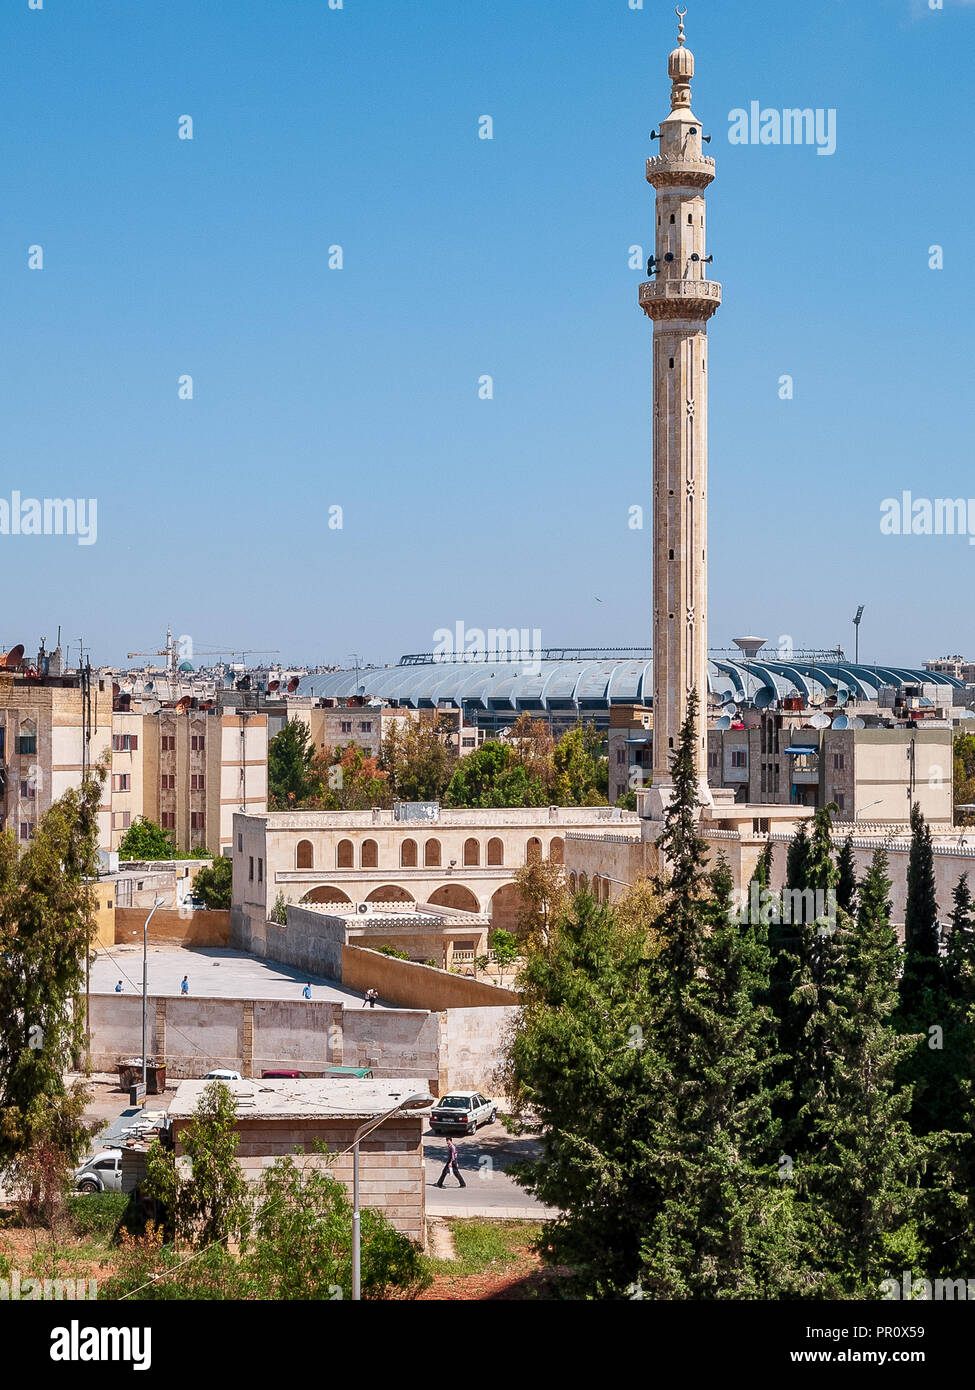 Aleppo Tourist Destination Stock Photos Aleppo Tourist Destination